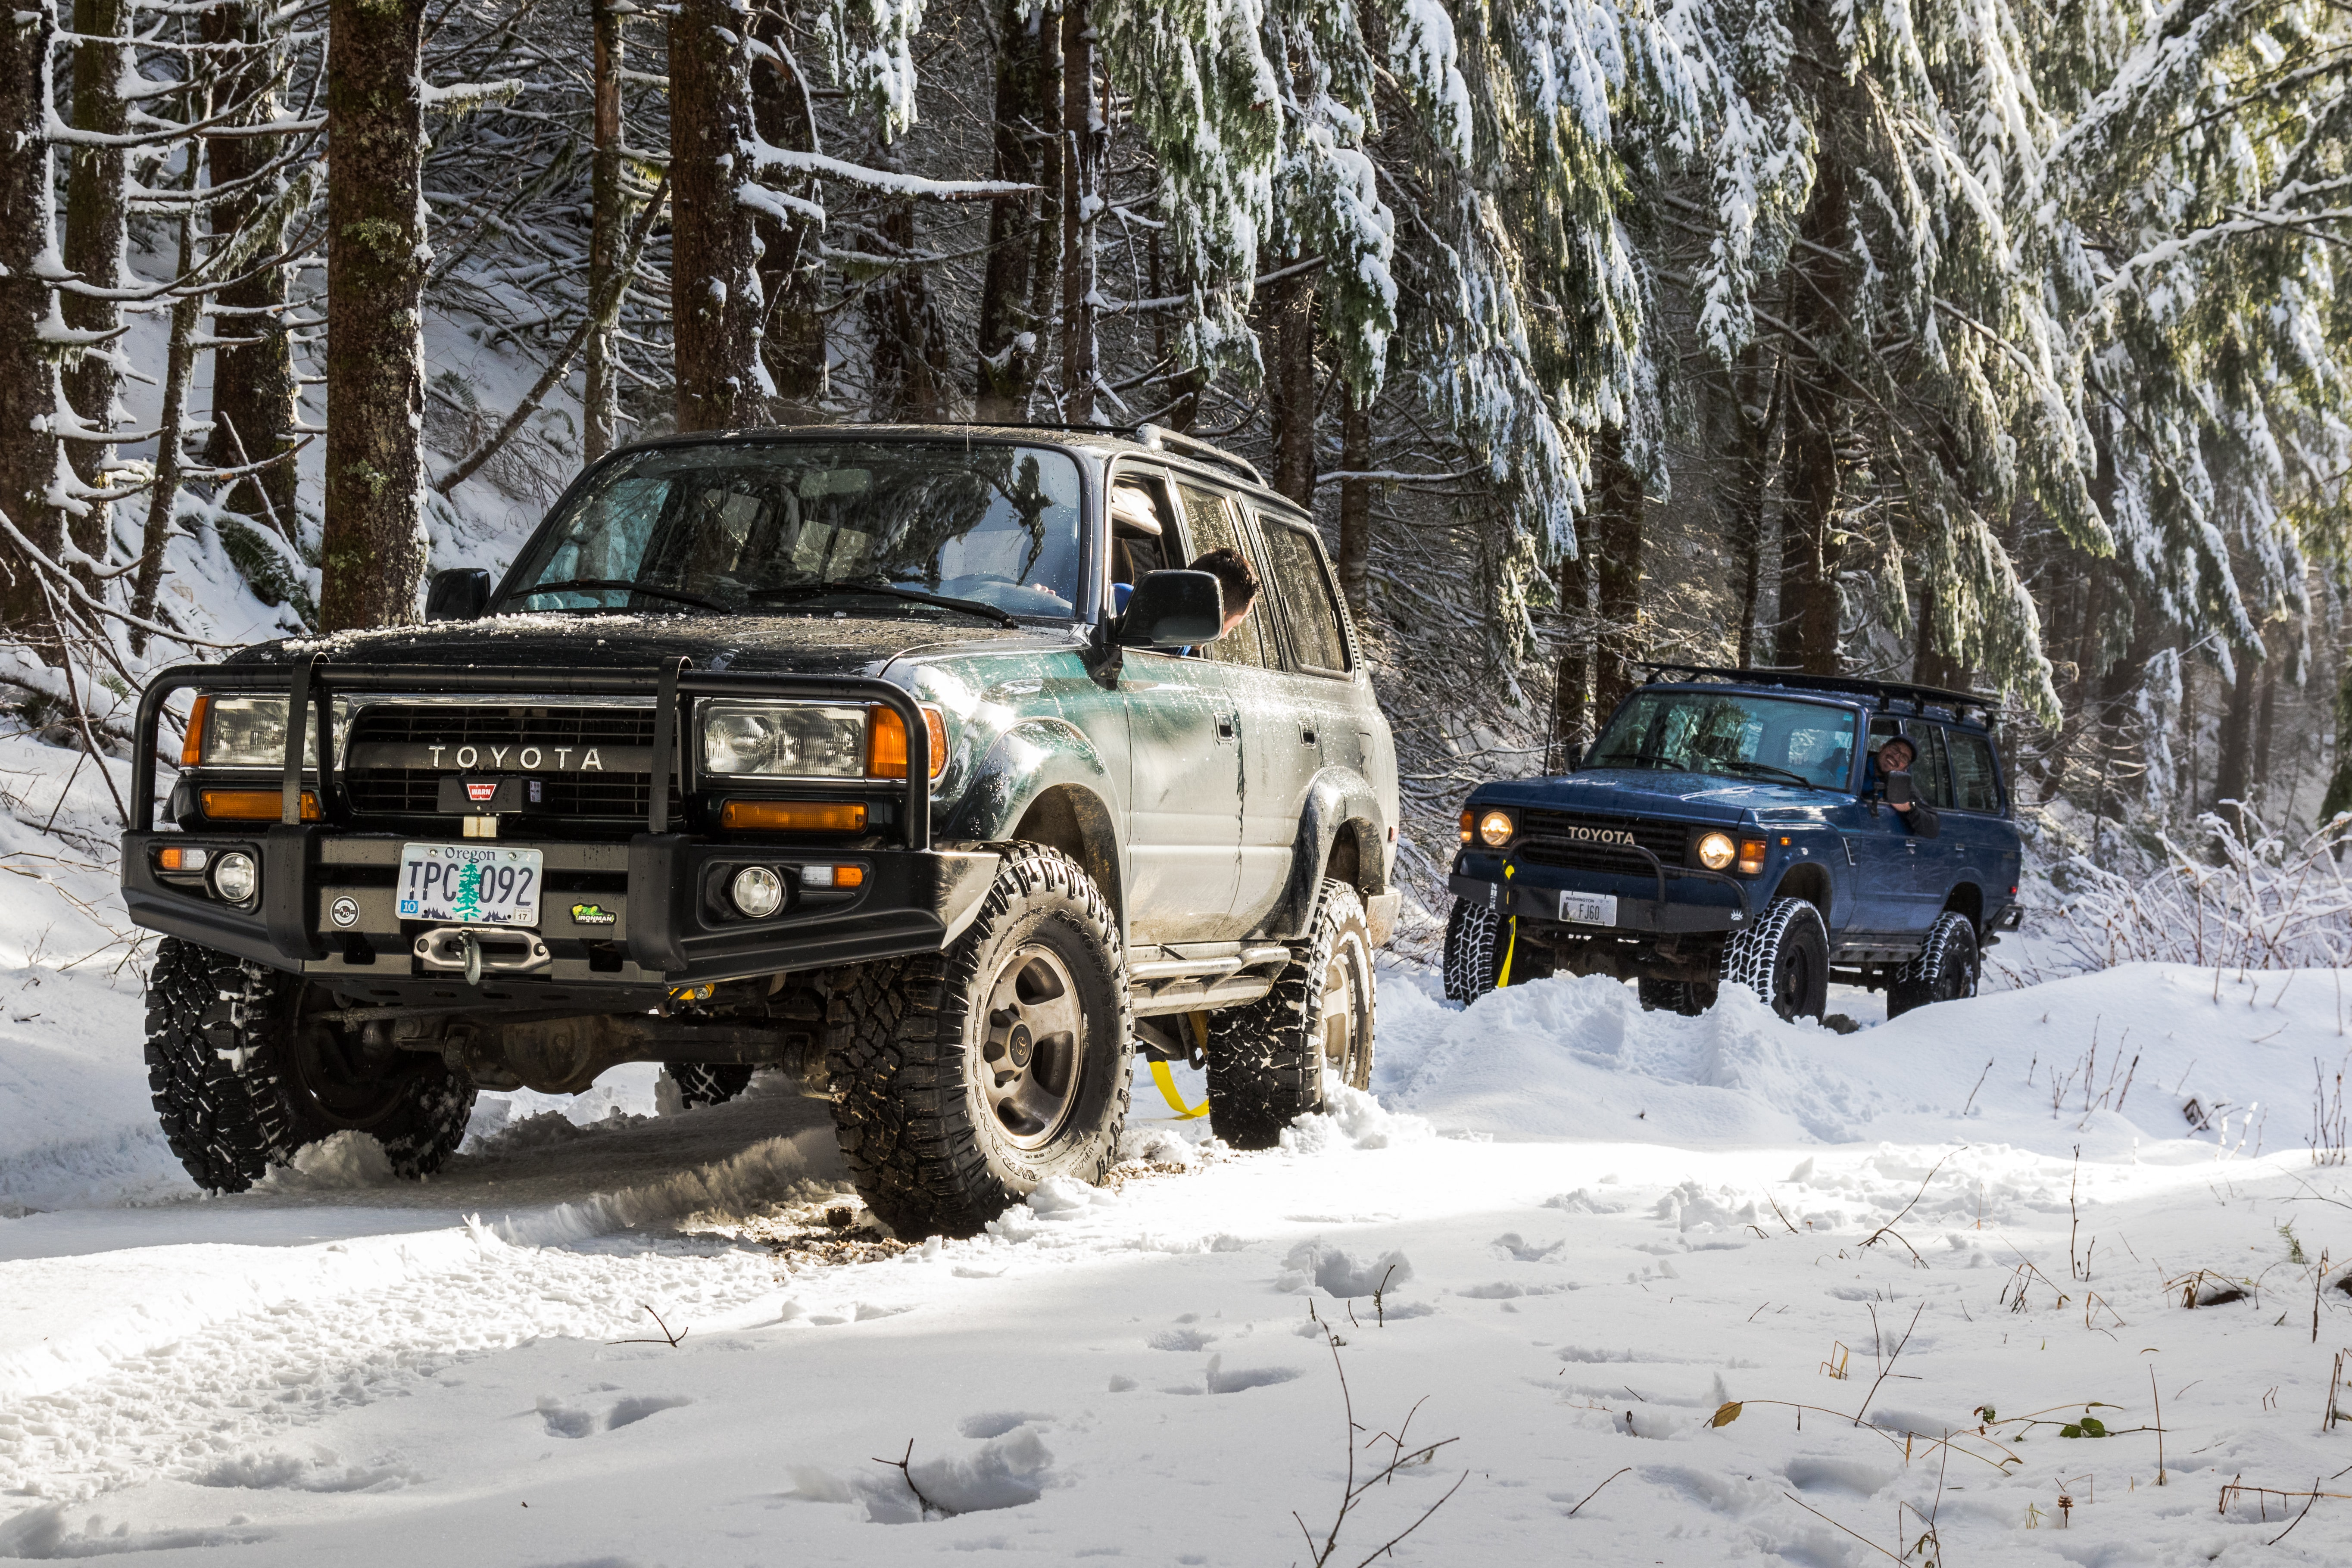 two Toyota SUV's on snowfield